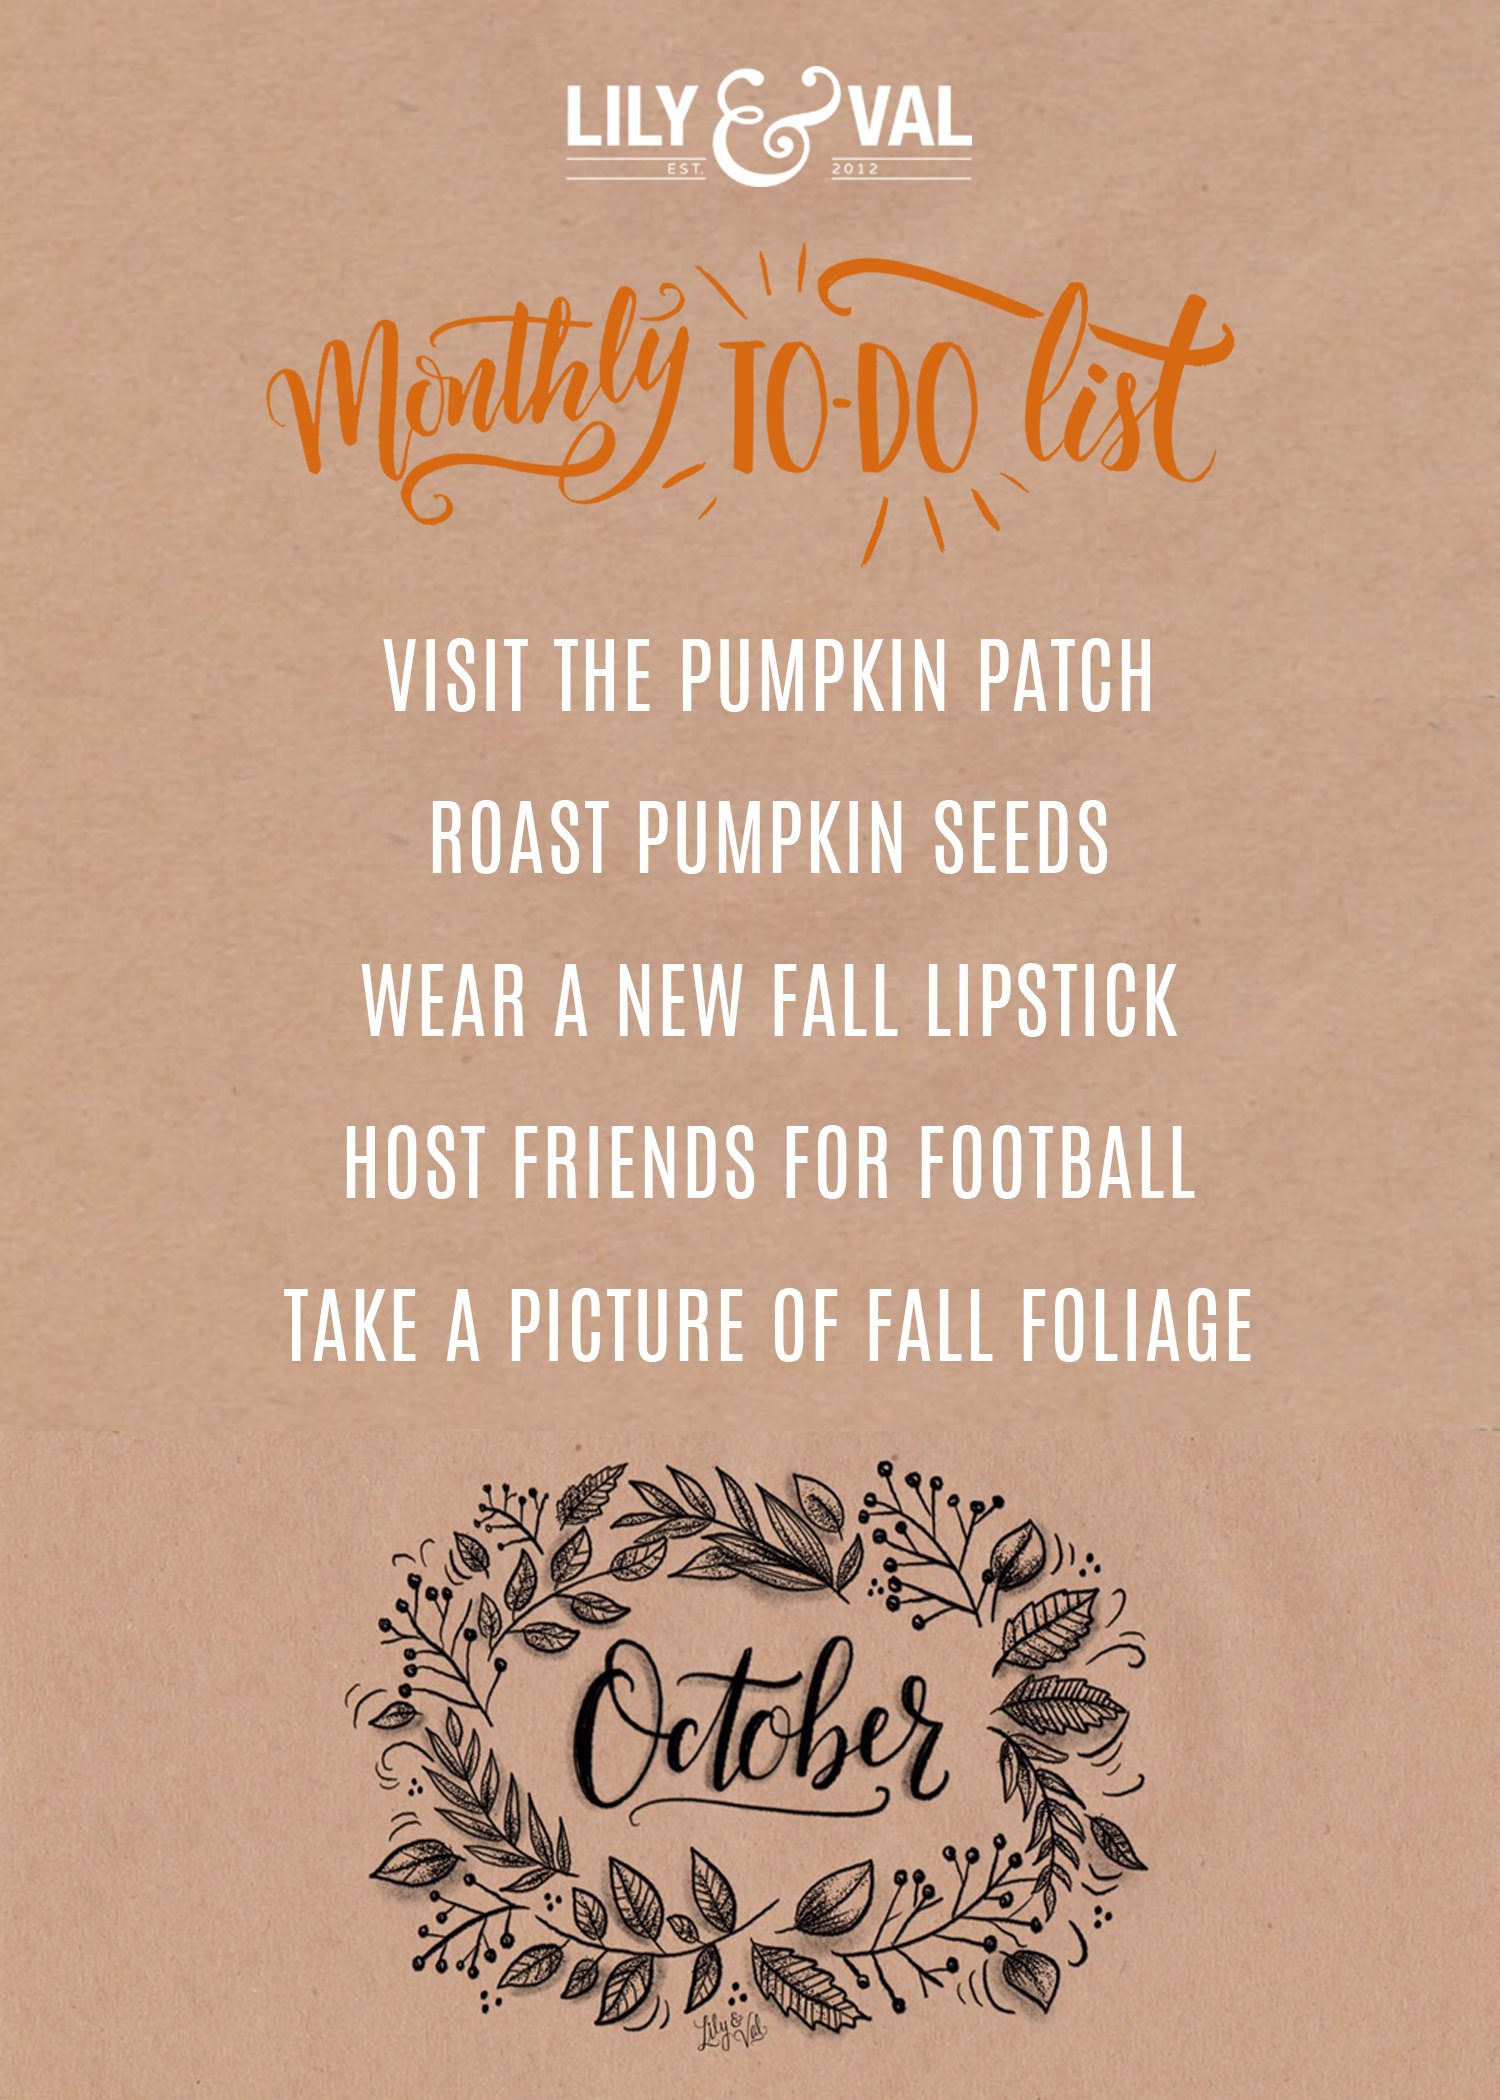 Download Lily & Val's free October to-do list to celebrate Fall in unique ways!